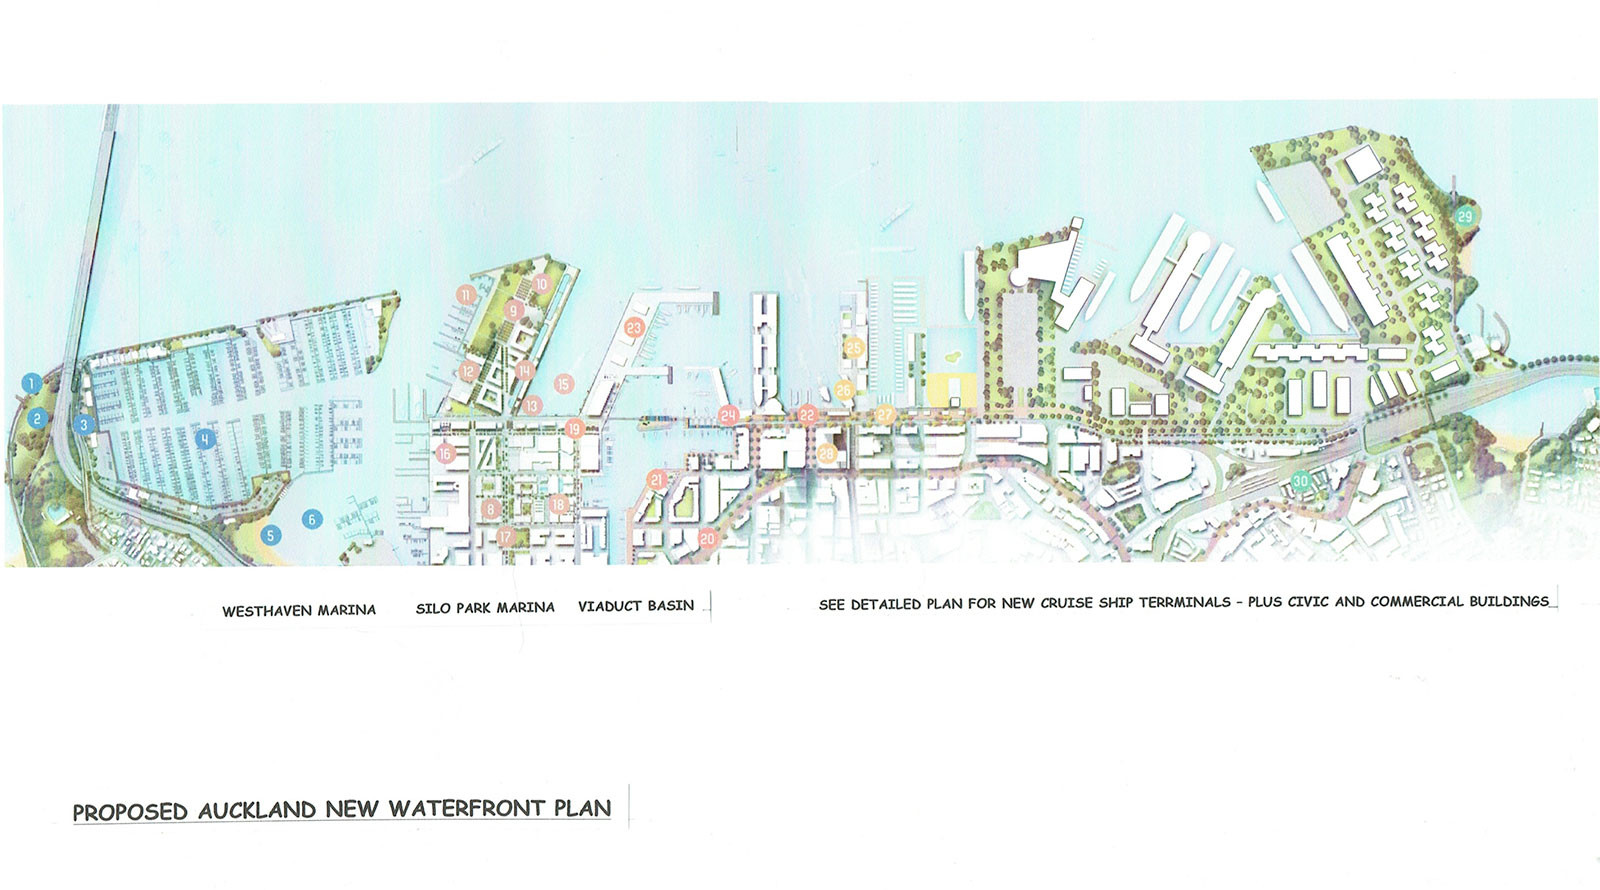 Auckland Waterfront Proposal